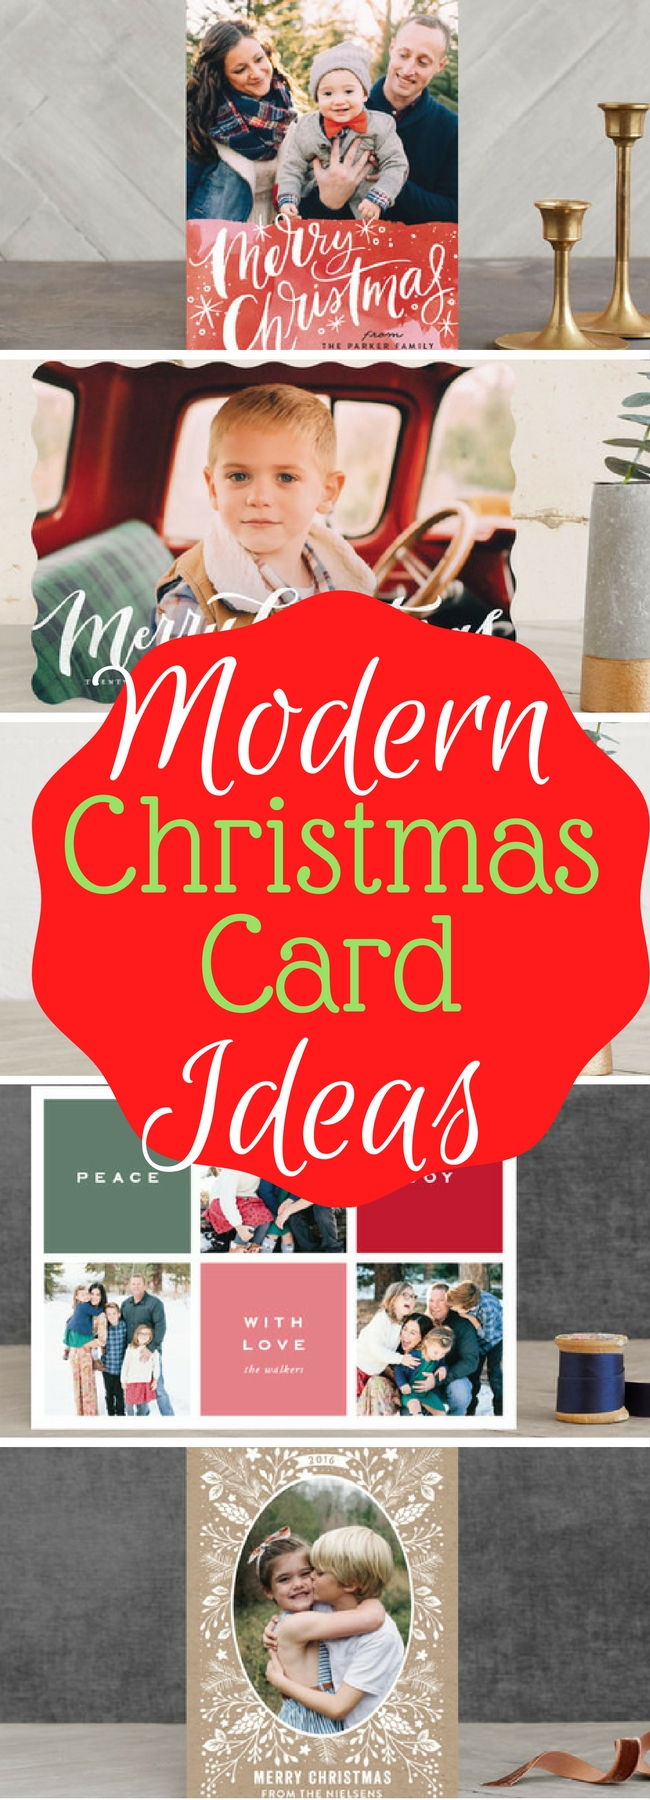 Here is a fun collection of Modern Christmas Card ideas for this year! via @clarkscondensed